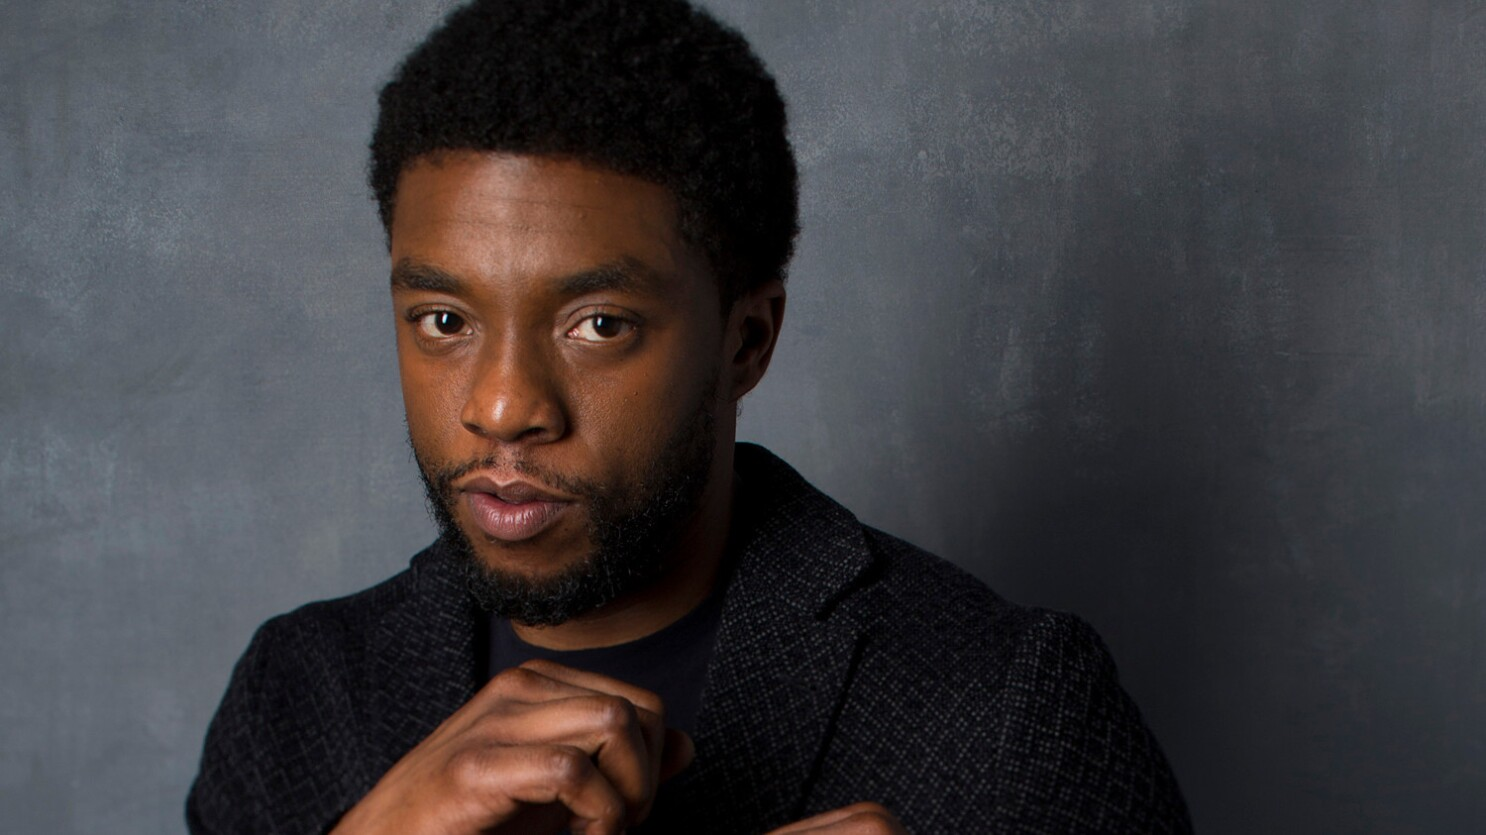 Commentary Chadwick Boseman S Death From Colon Cancer Is A Wake Up Call For Young People Los Angeles Times